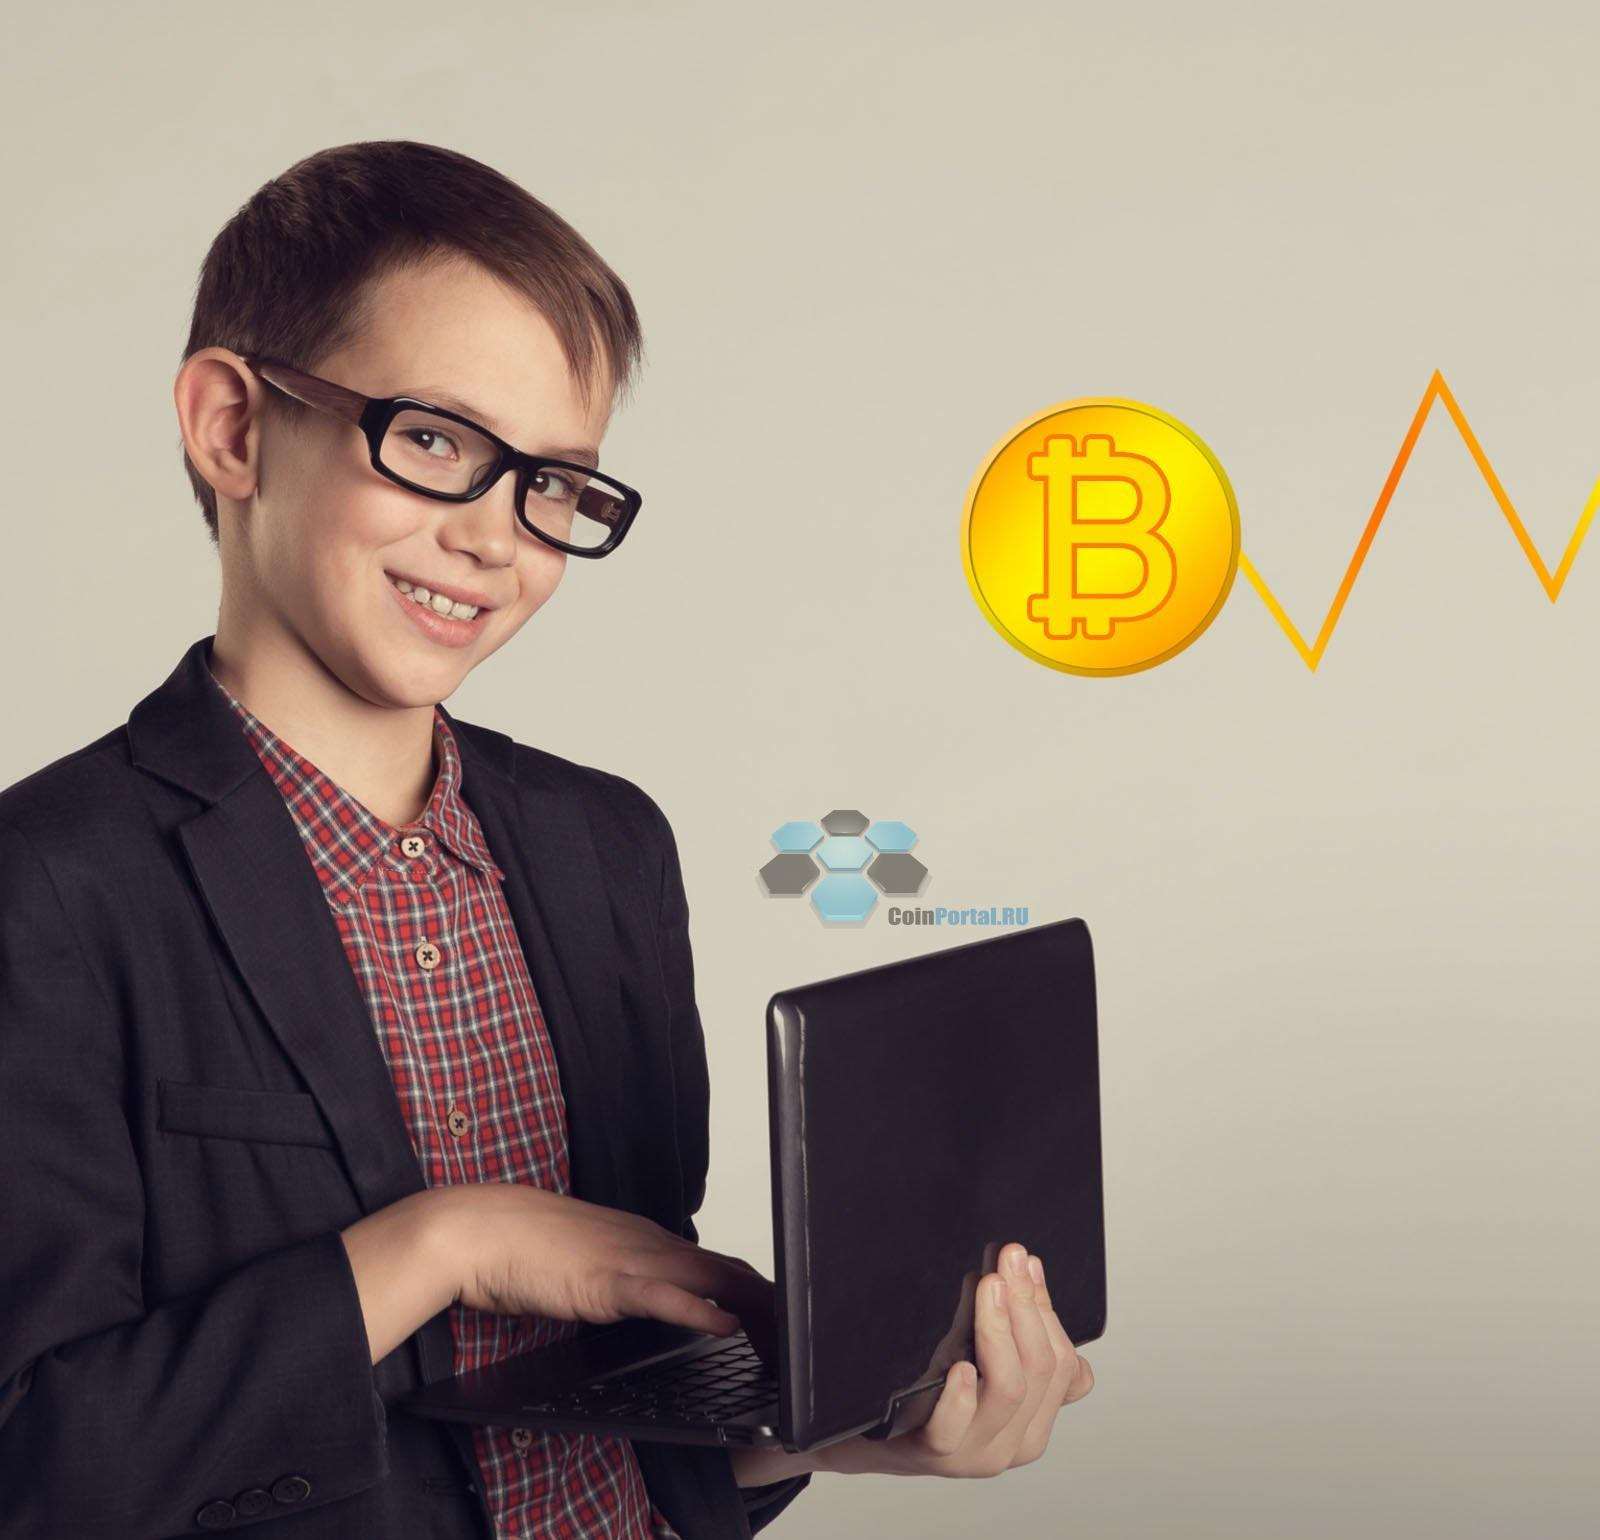 Younger-Americans-See-Bitcoin-As-Investment-Opportunity-Survey-Says-2